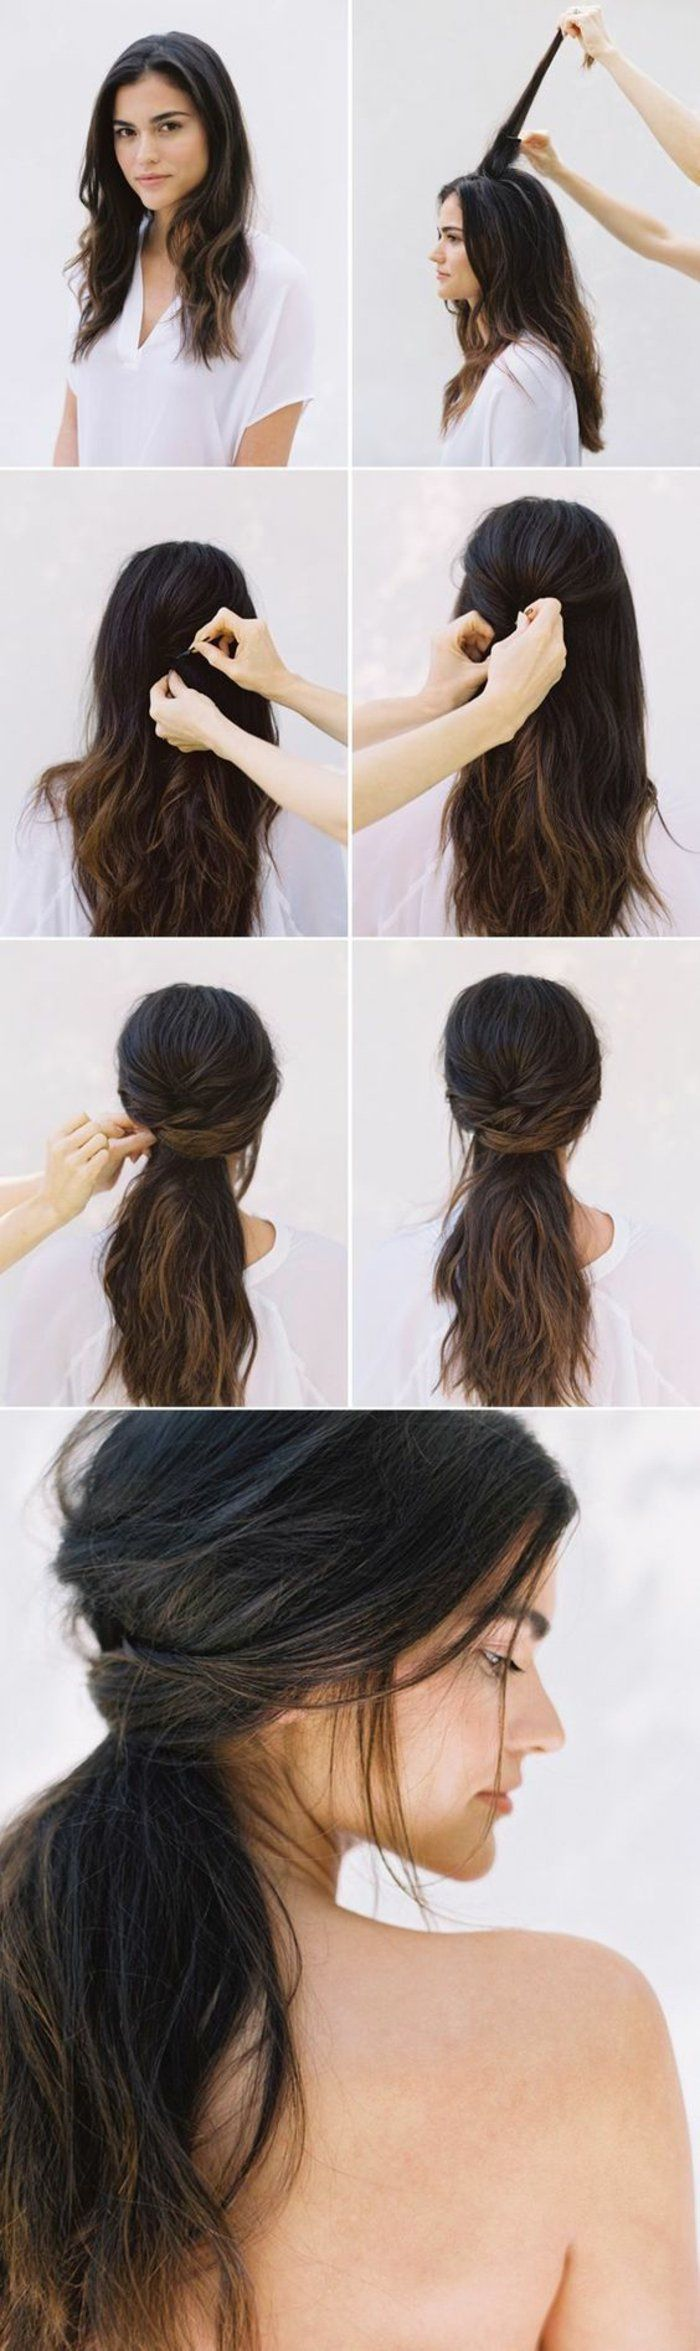 35+ Coiffure chic facile inspiration